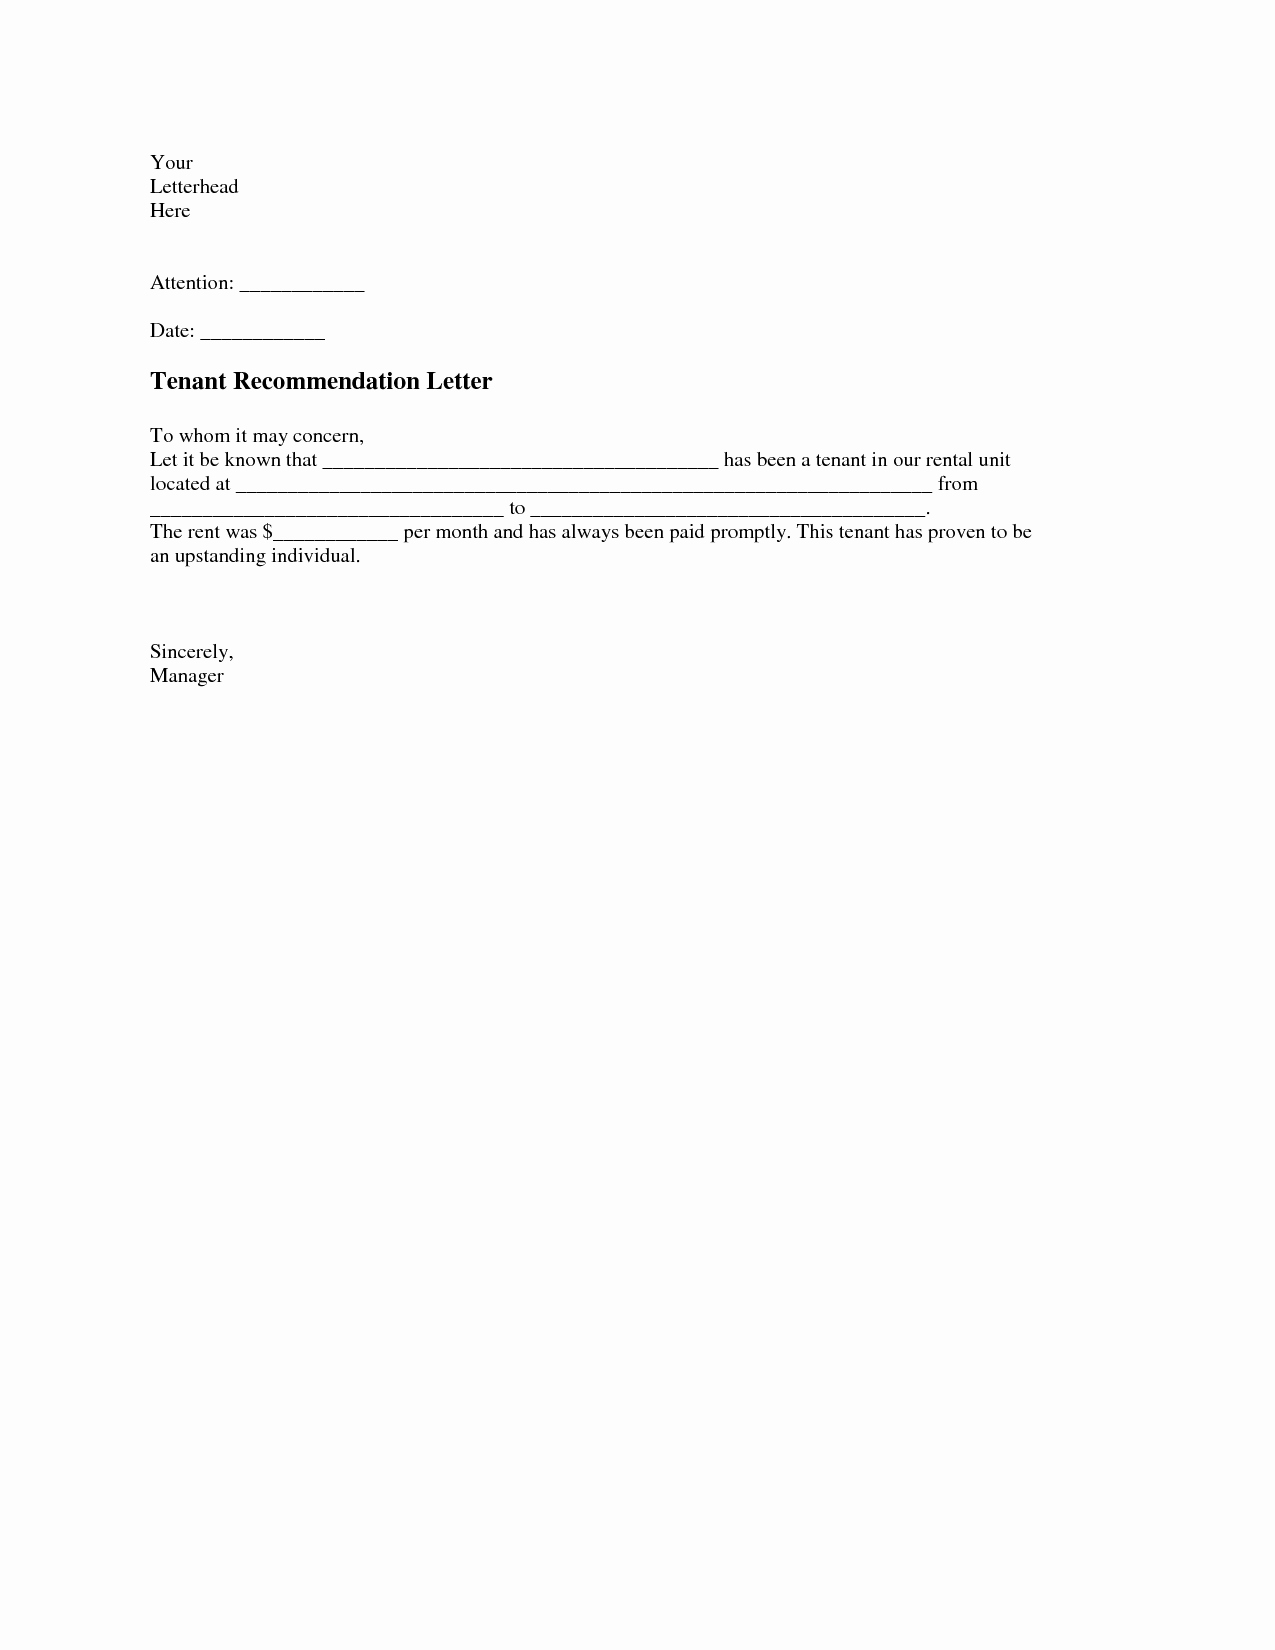 Recommendation Letter From Landlord Lovely Tenant Re Mendation Letter A Tenant Re Mendation